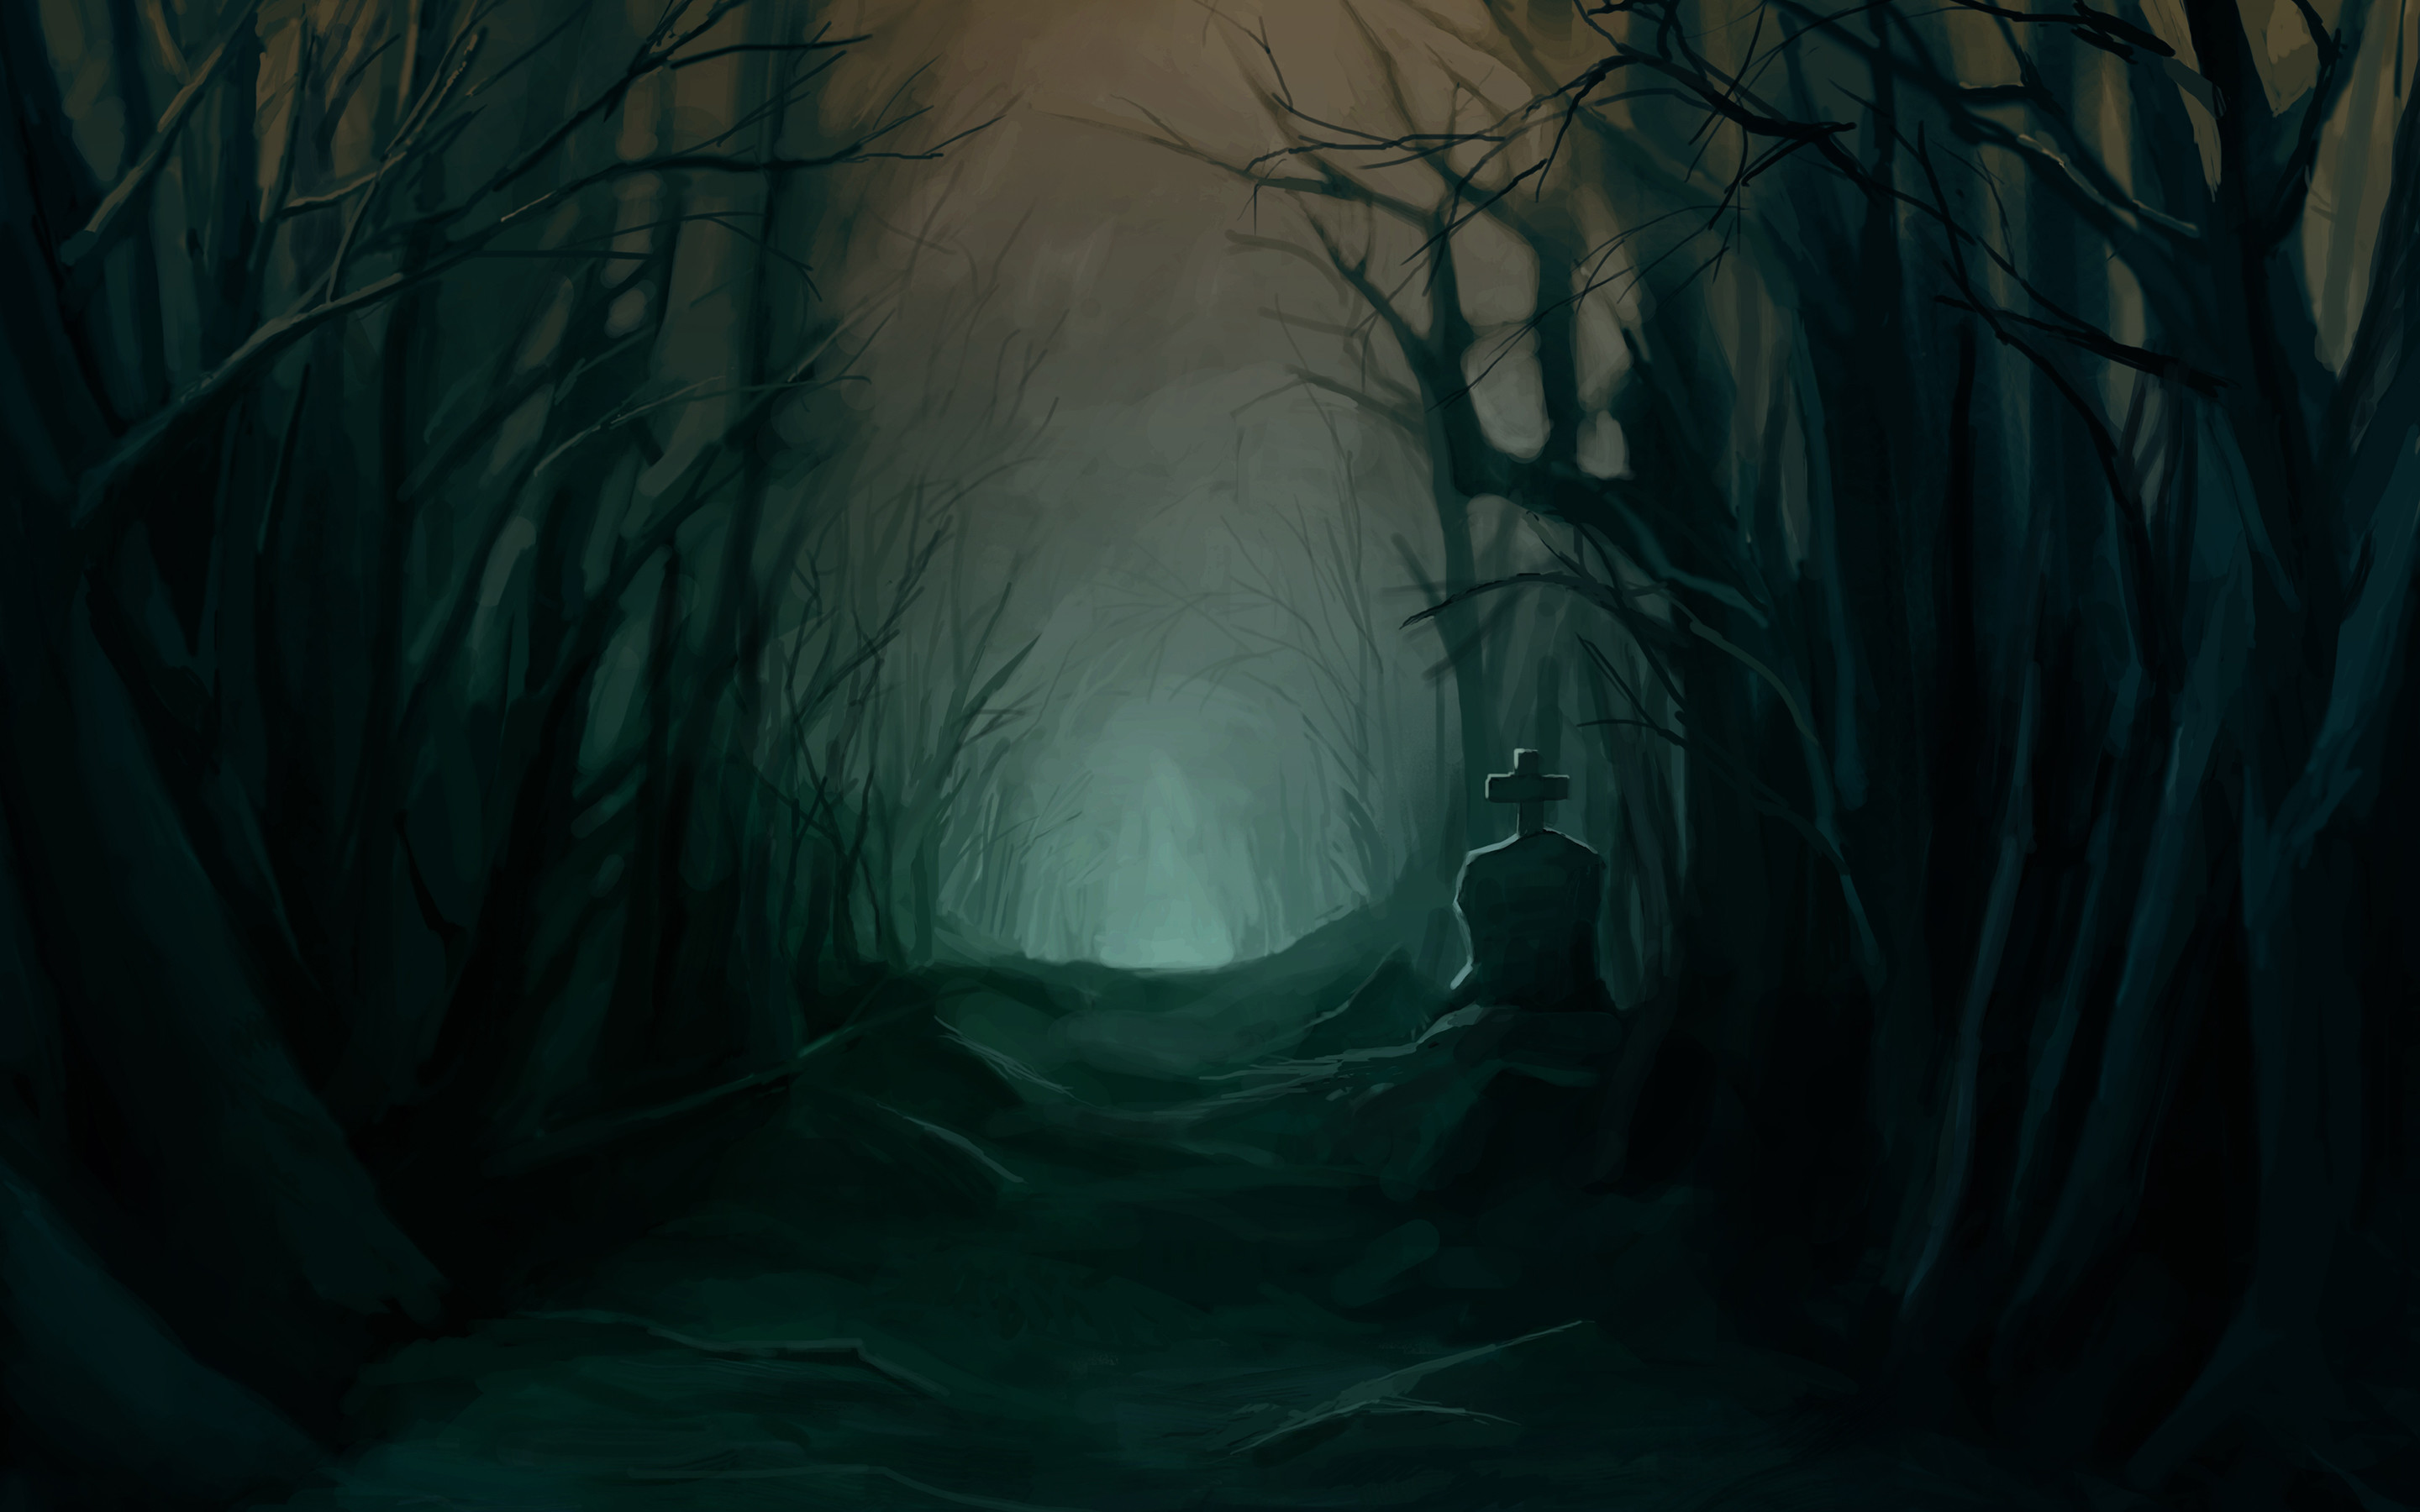 Tombstone Dark Halloween Trees Forest Woods Night Scary Spooky Creepy Glow  Cemetery Grave Landscapes Wallpaper At Dark Wallpapers